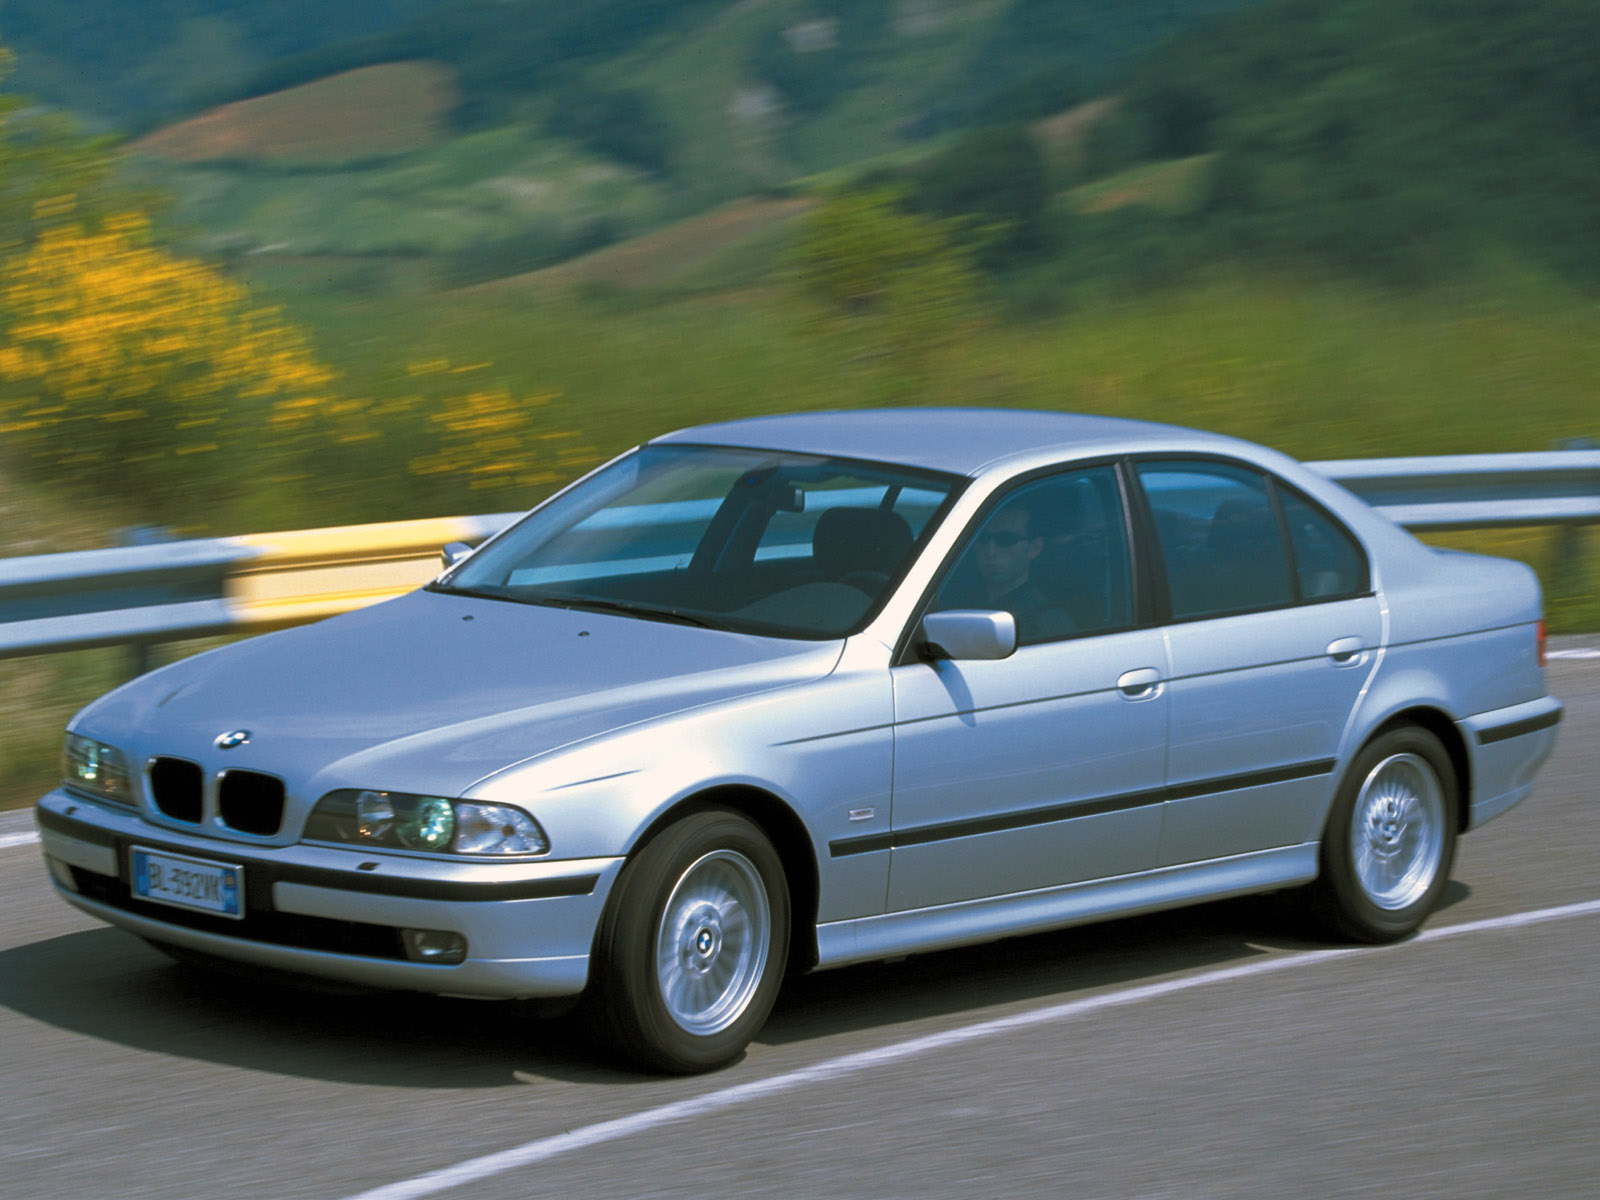 Bmw 530d 1999 Review Amazing Pictures And Images Look At The Car